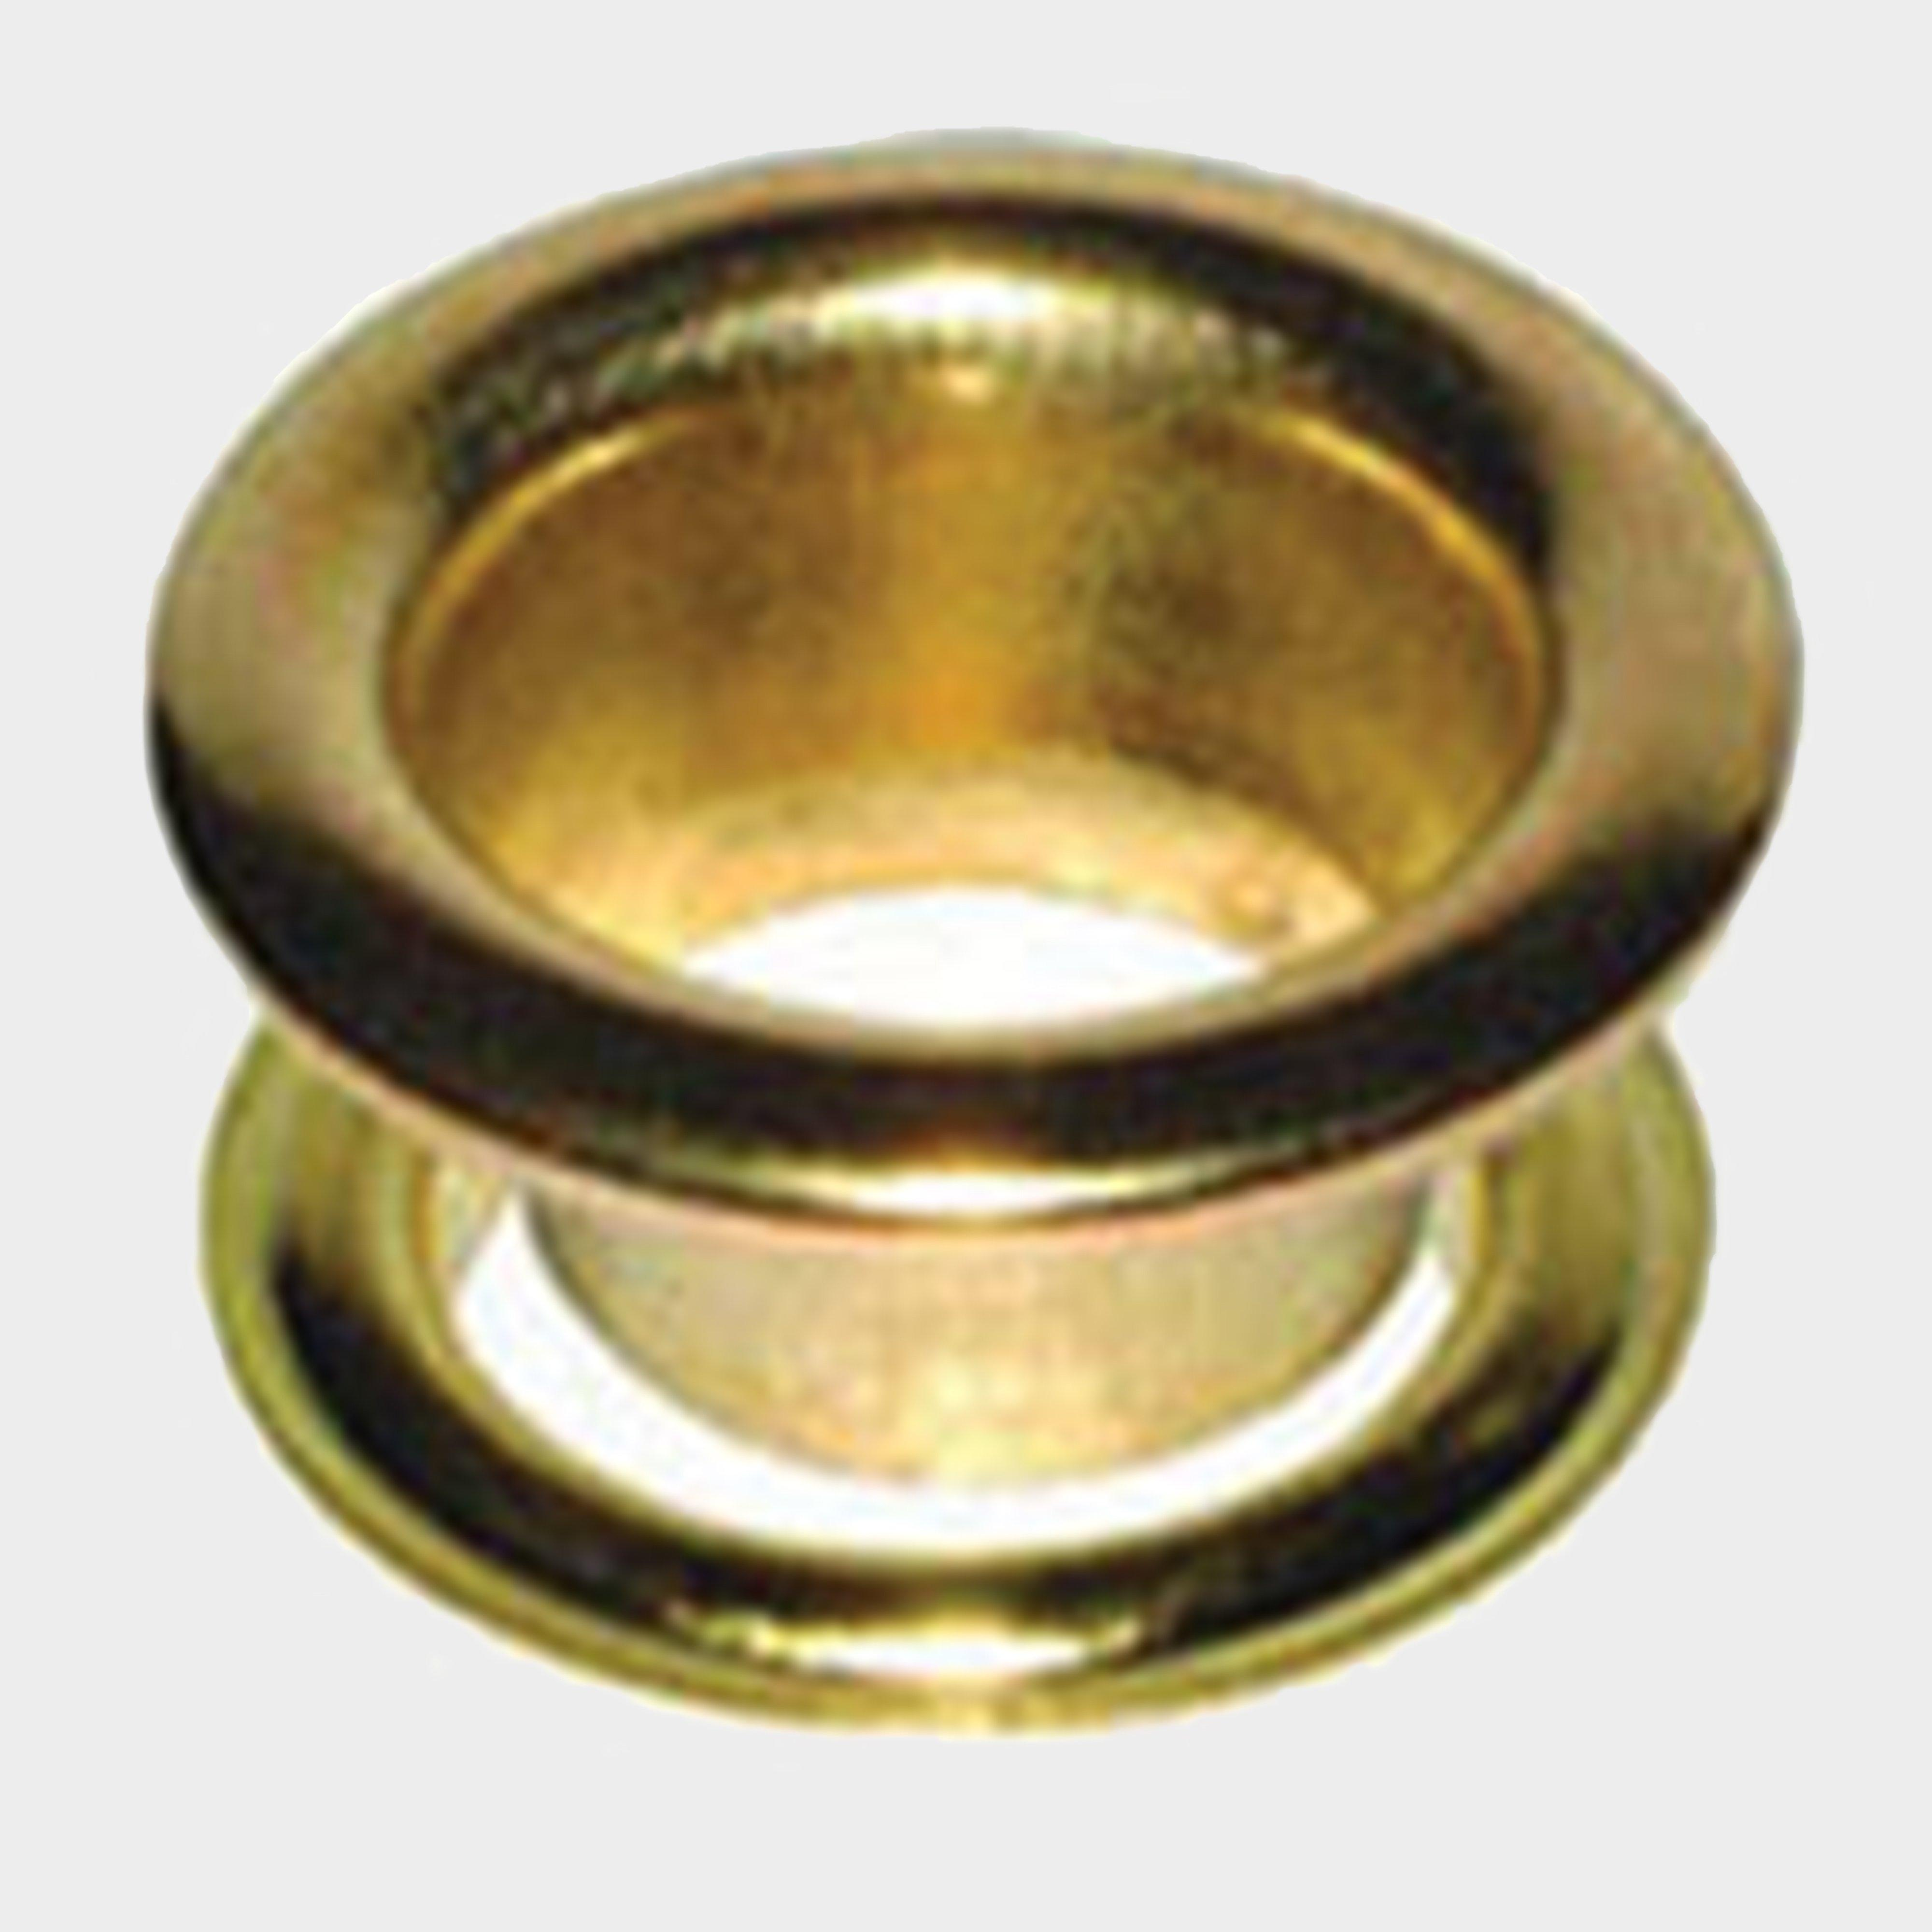 W4 Brass Eyelets 10 Pack - Gold/gold  Gold/gold